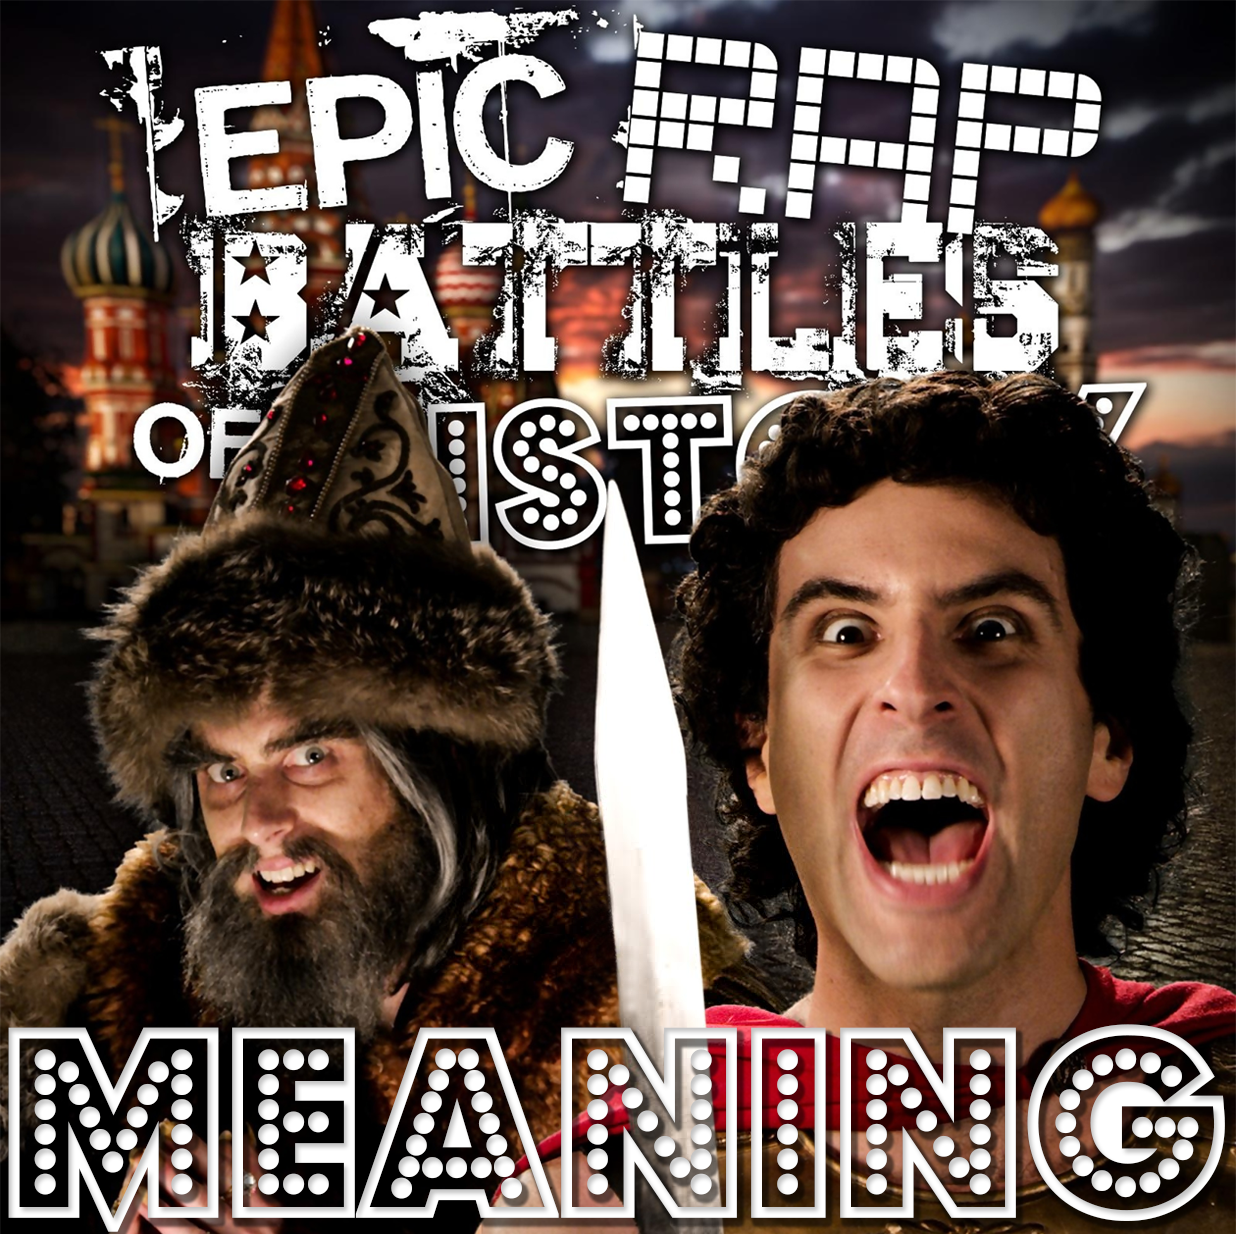 Alexander the Great vs Ivan the Terrible/Rap Meanings | Epic